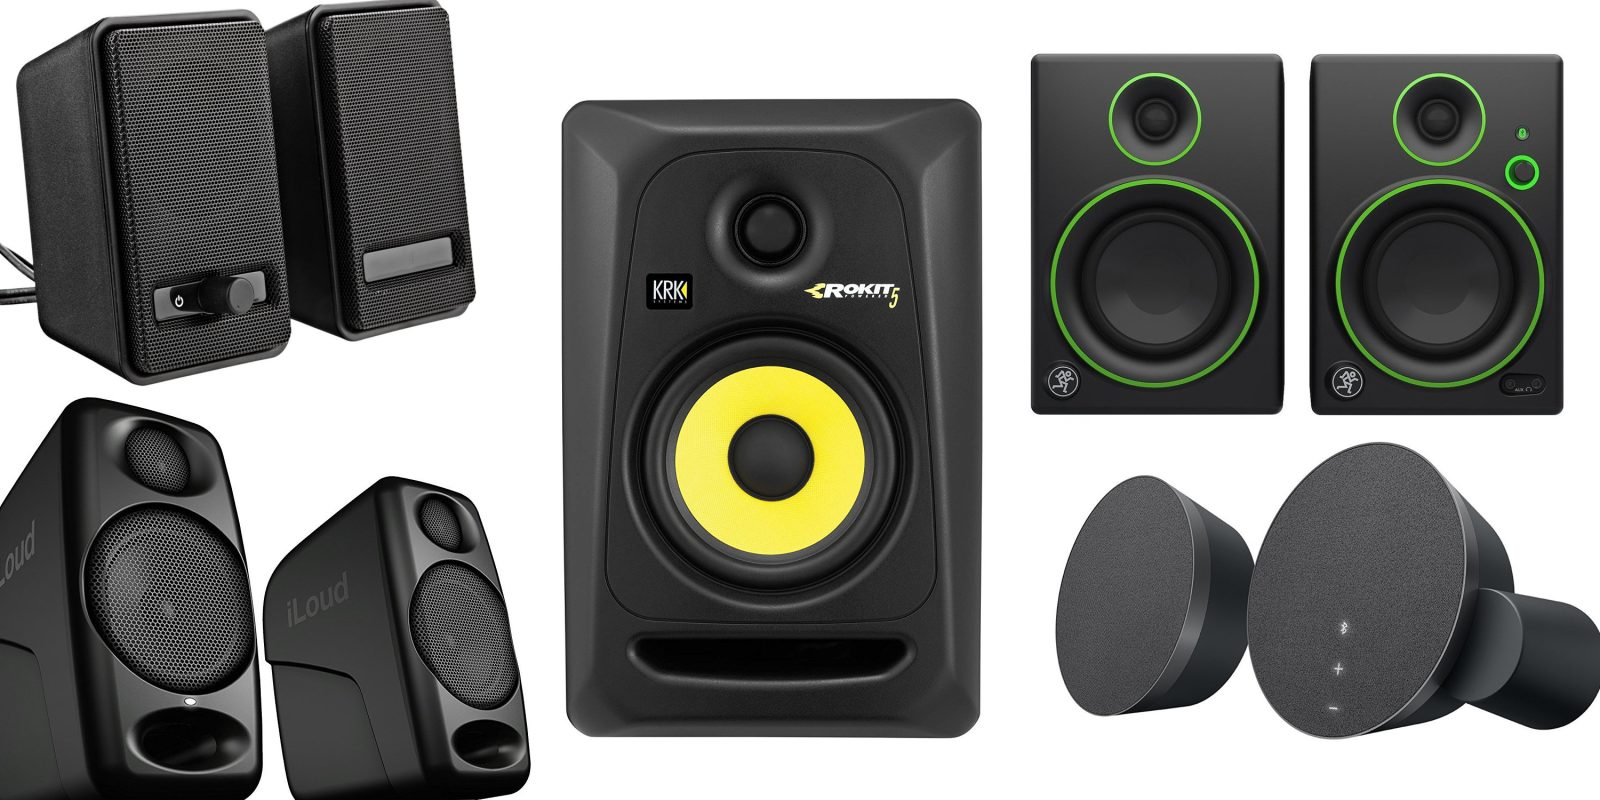 Best Desktop Speakers For Mac Users Logitech Mackie Krk And More Audio From 14